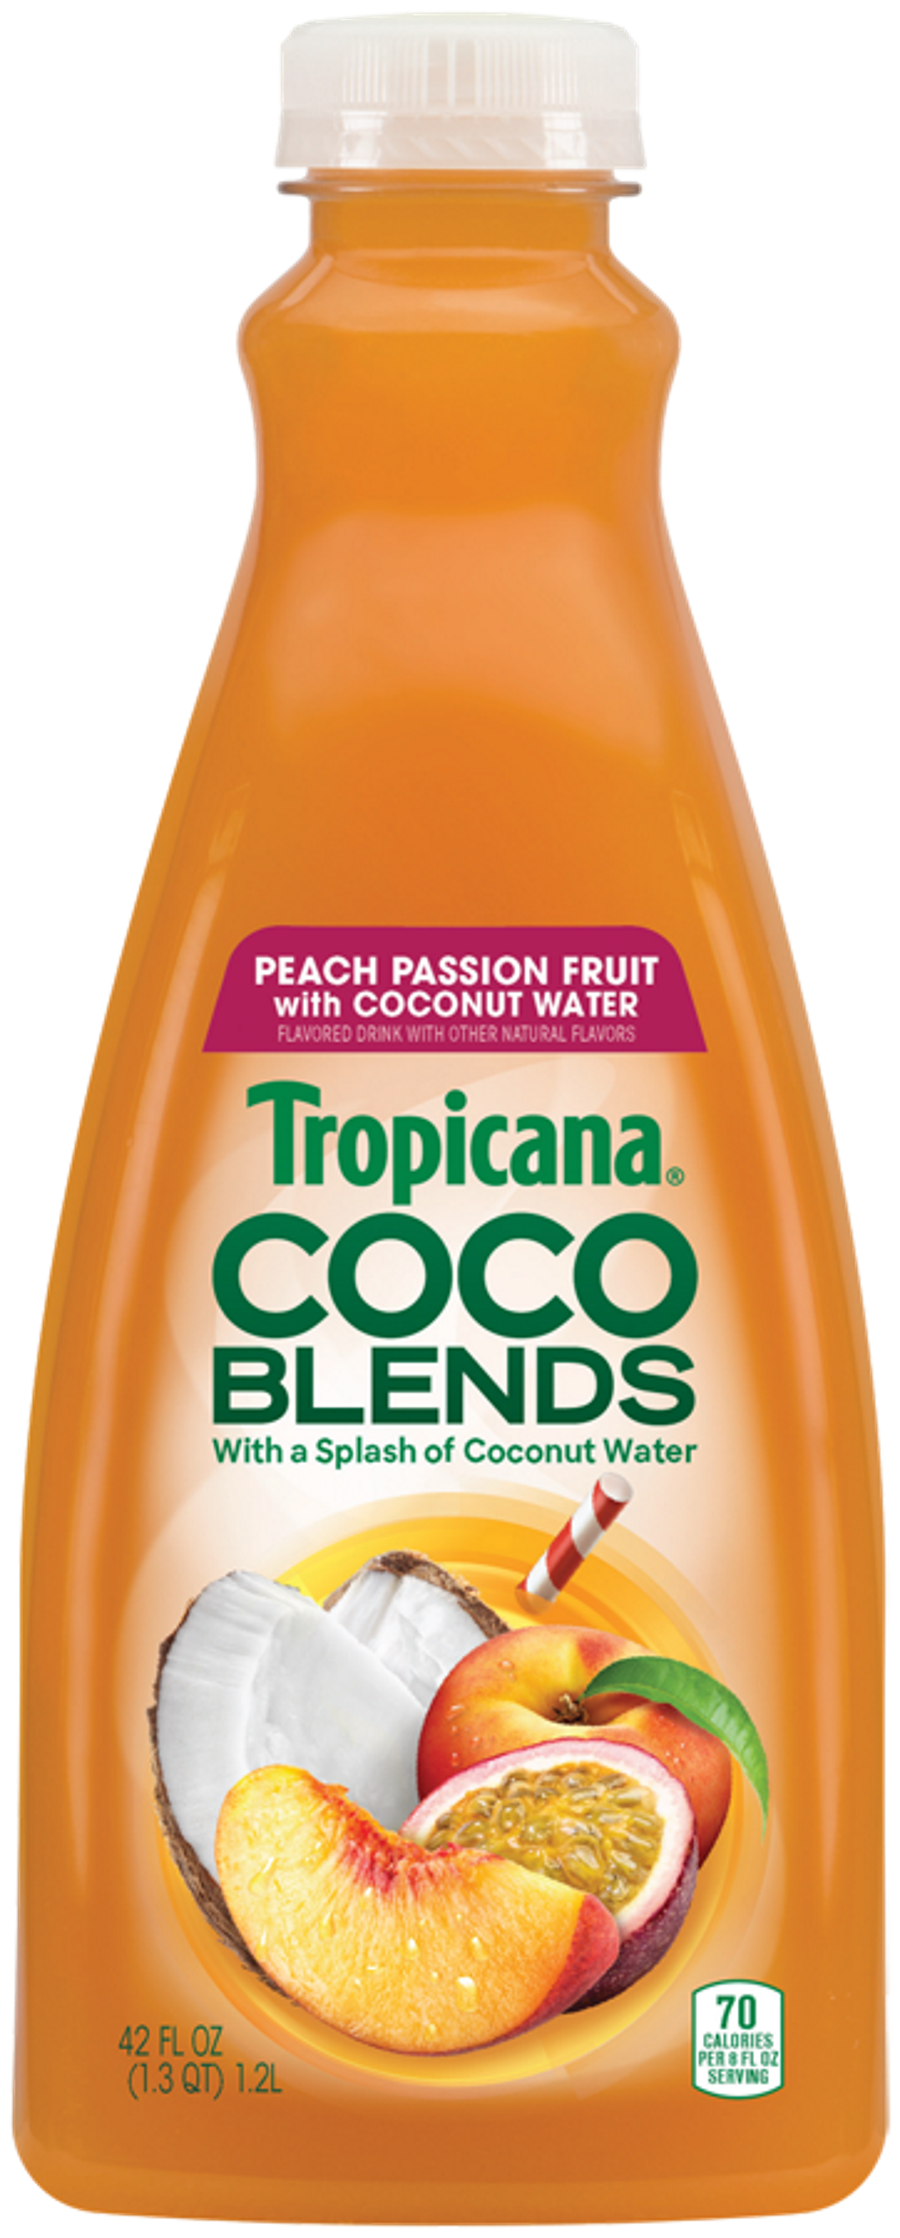 Tropicana CocoBlends PeachPassionFruit